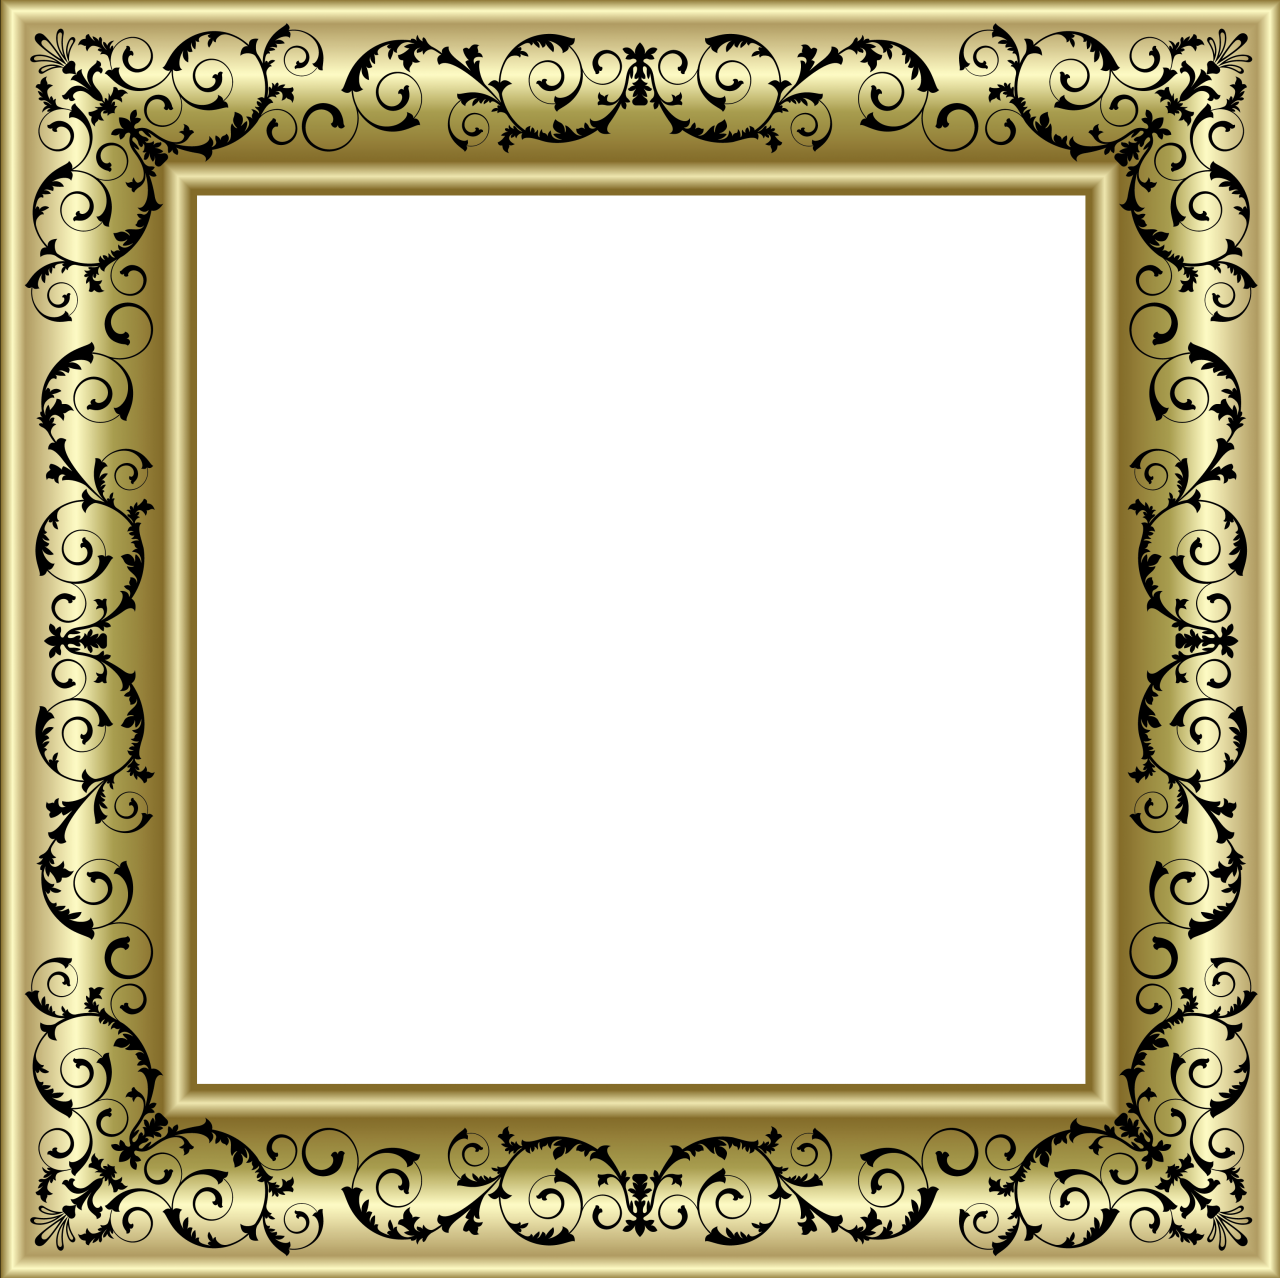 Photo frame png. Gold with black ornaments